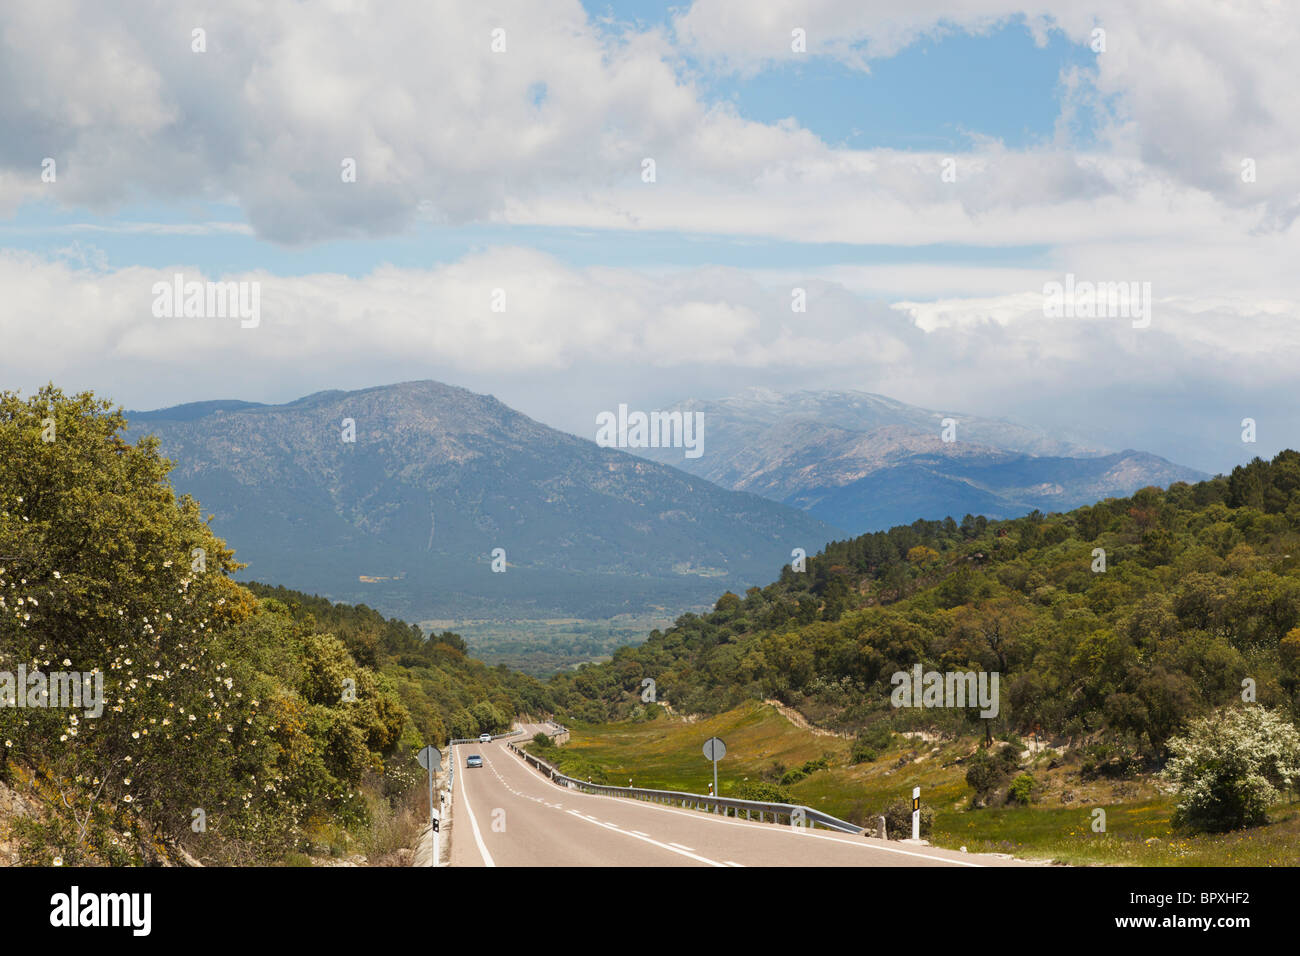 Typical countryside in the Sierra de Gredos, Avila Province, Spain. - Stock Image